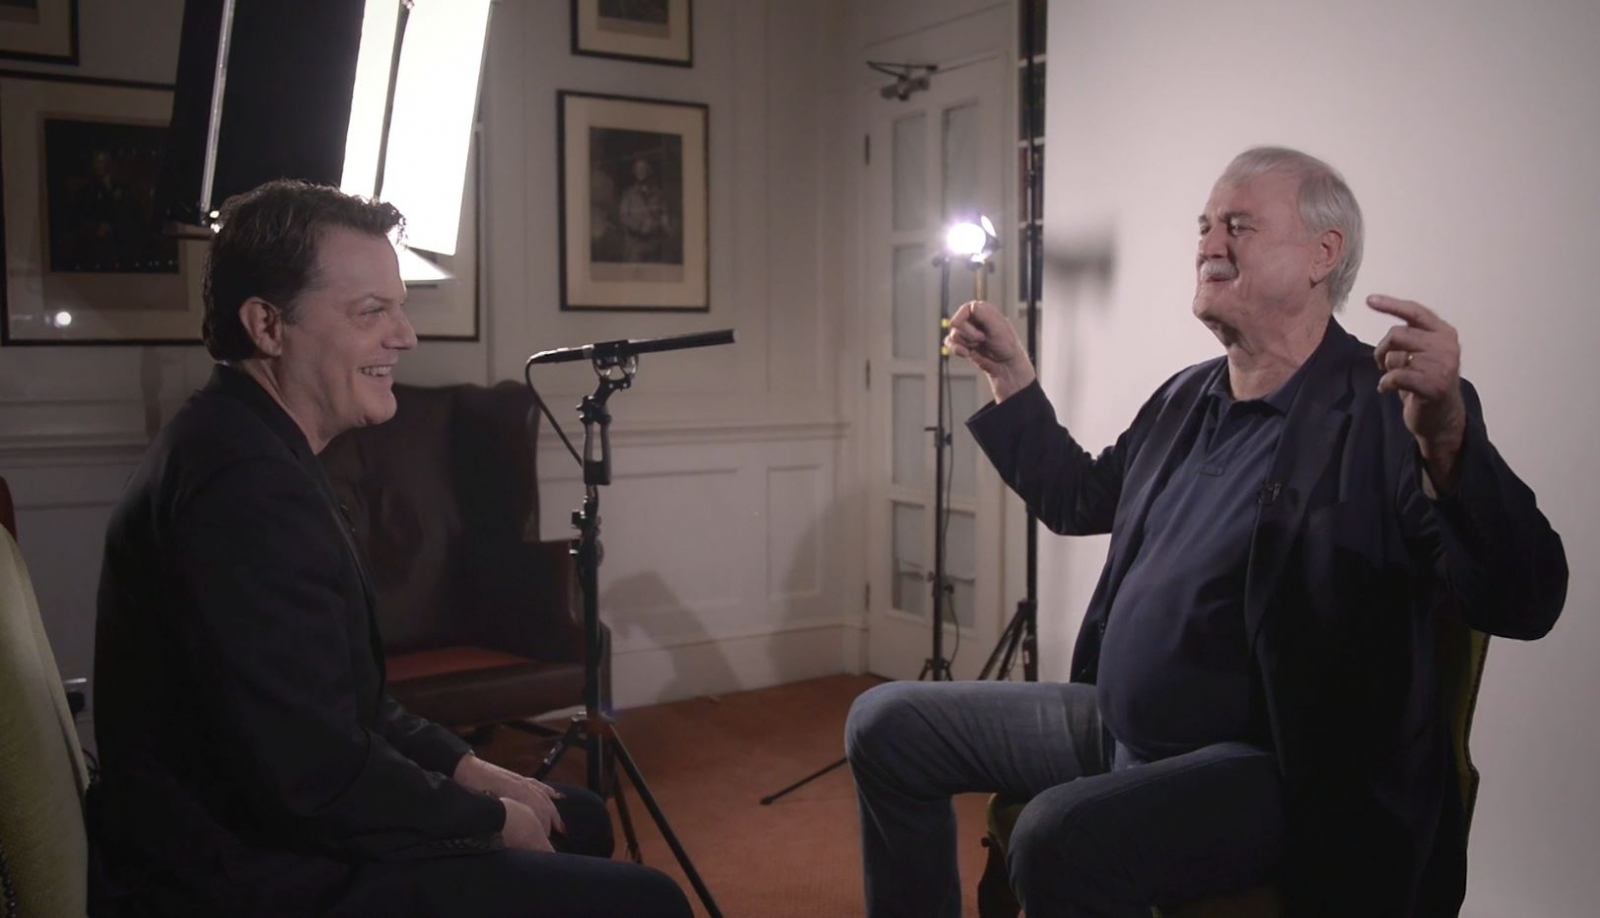 Eddie Izzard Interviews John Cleese on this Comedy Career